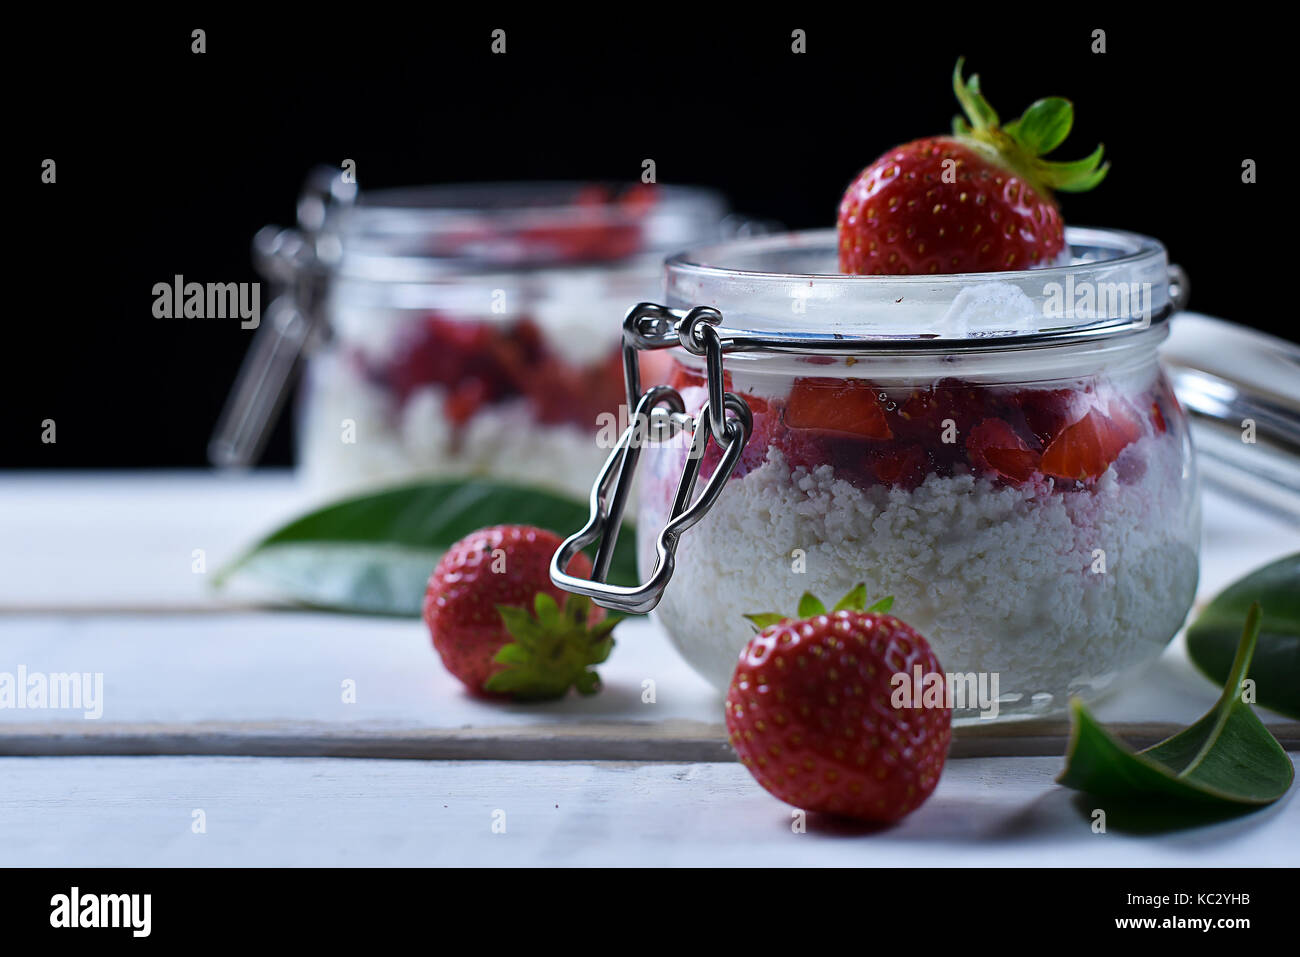 Strawberry dessert on the table - Stock Image